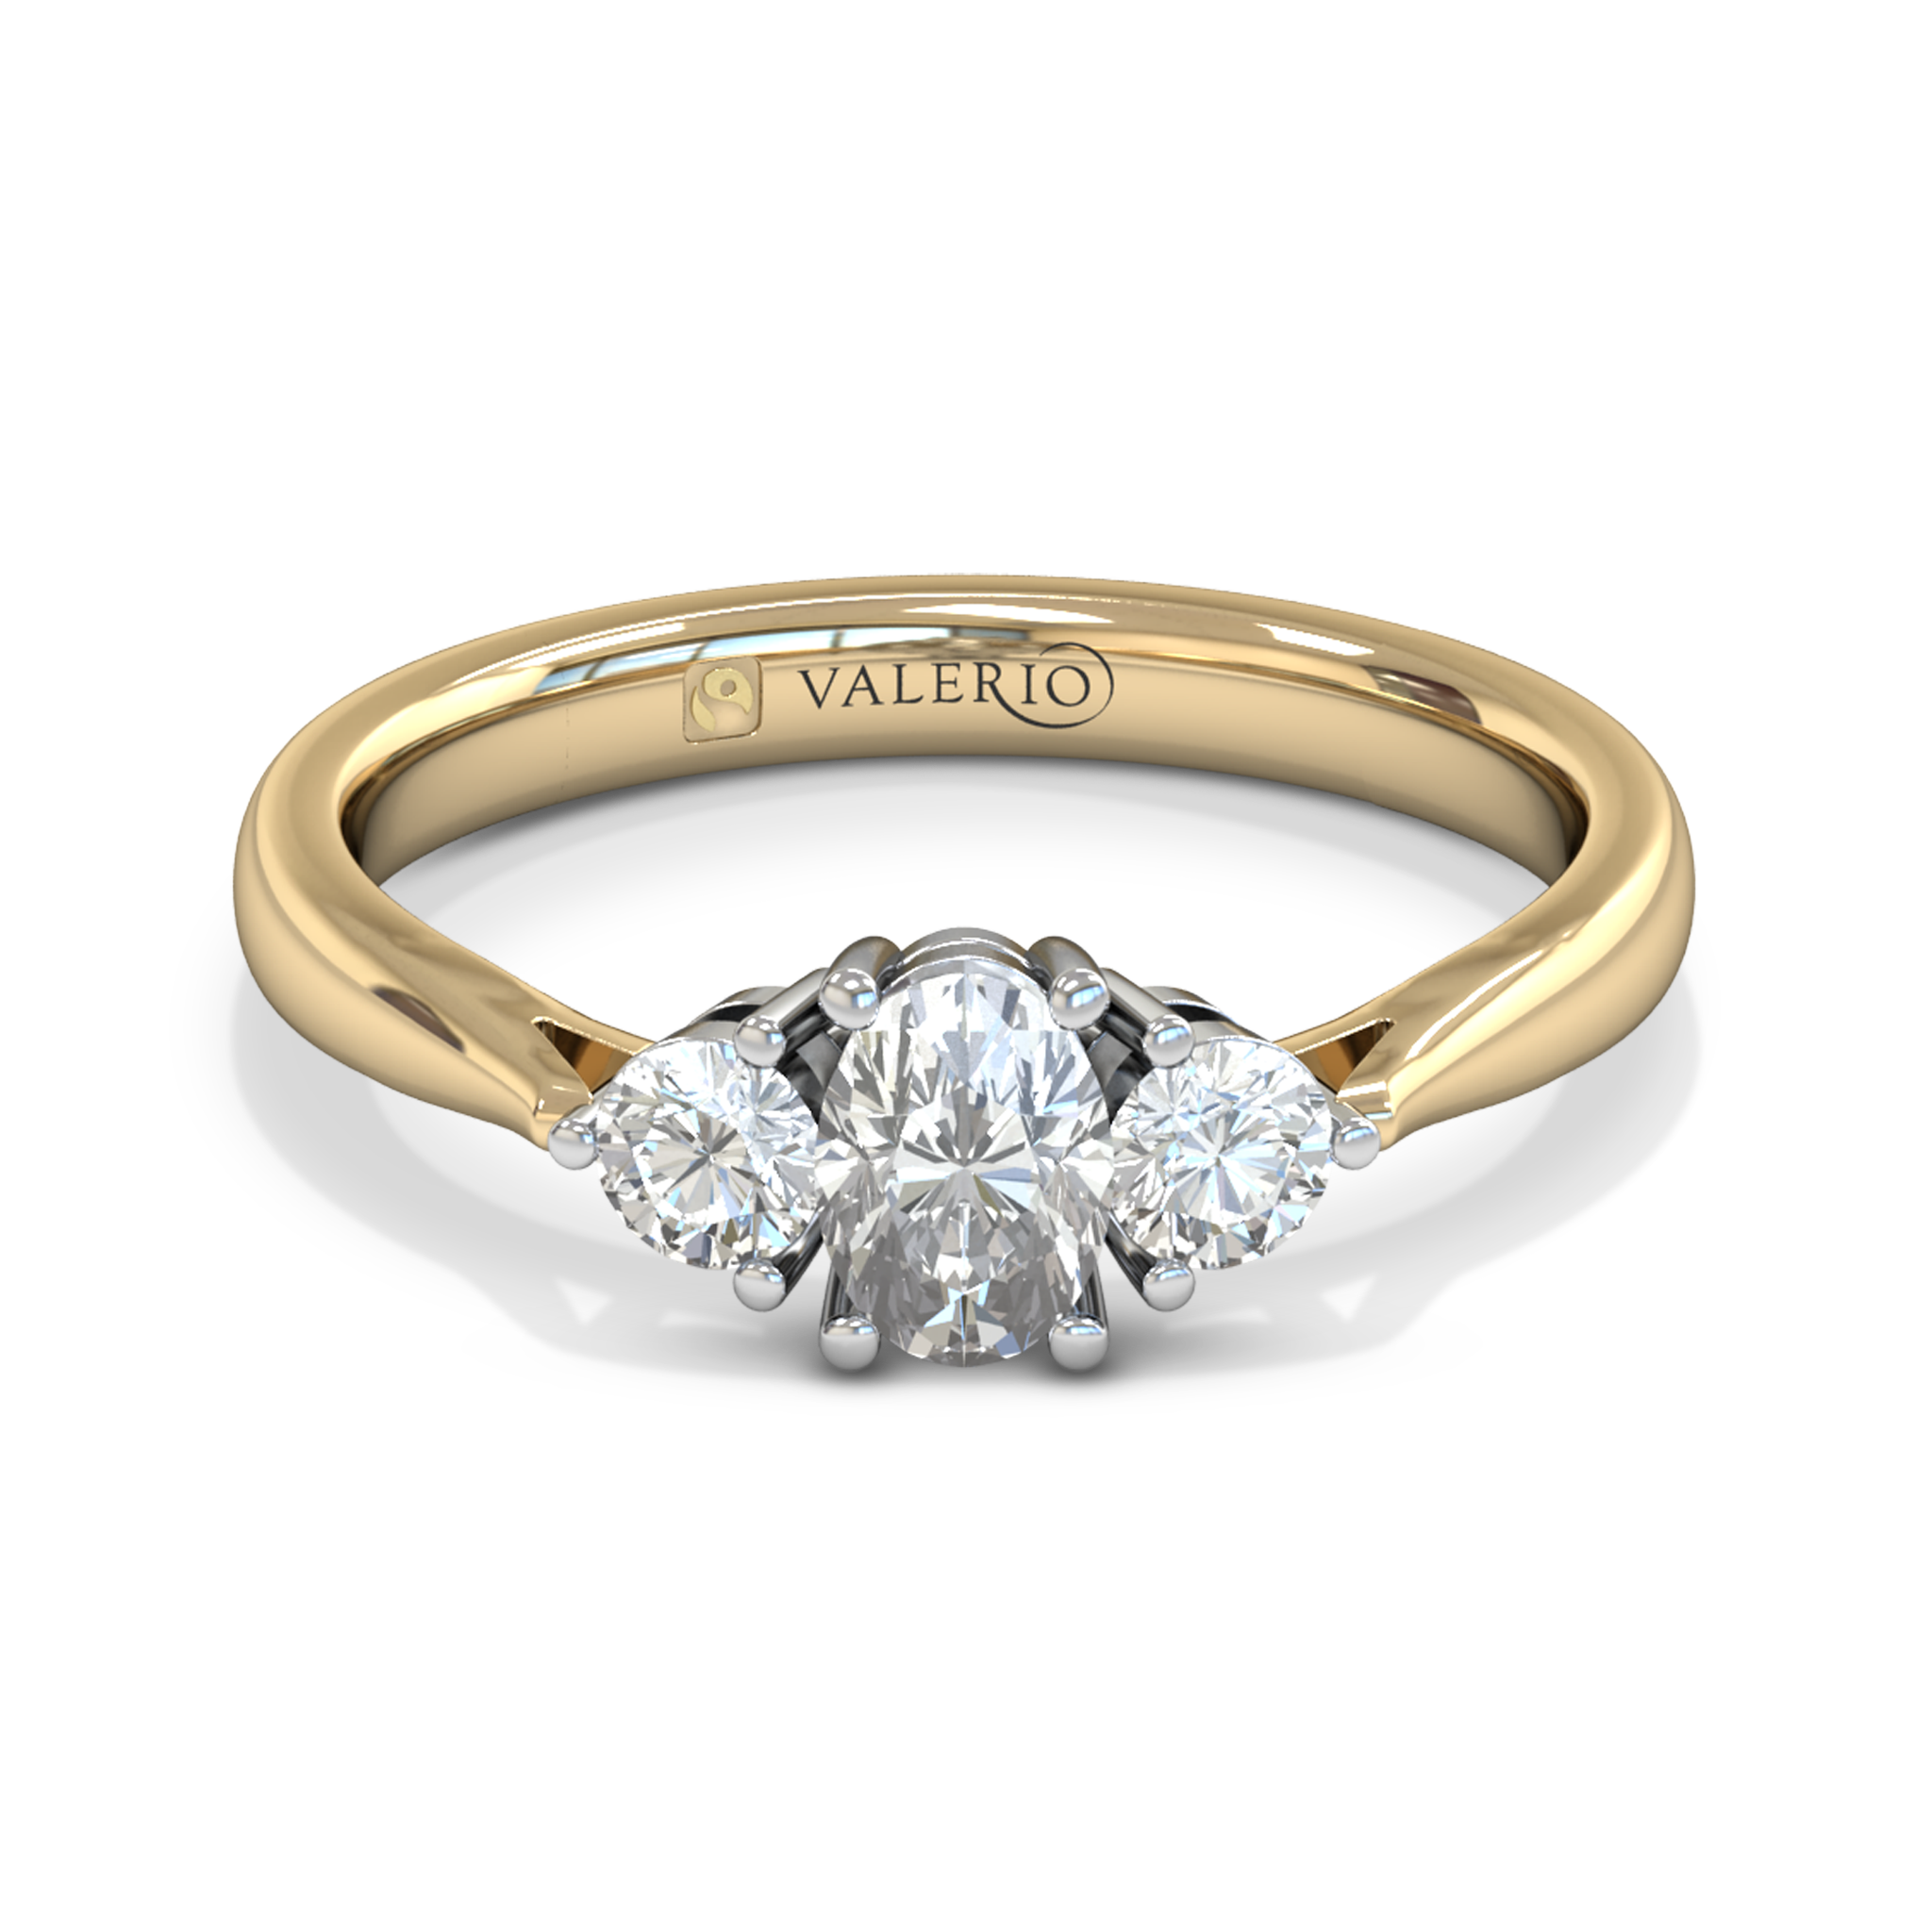 Oval Diamond Trinity Fairtrade Gold Engagement Ring in 18K Yellow Gold